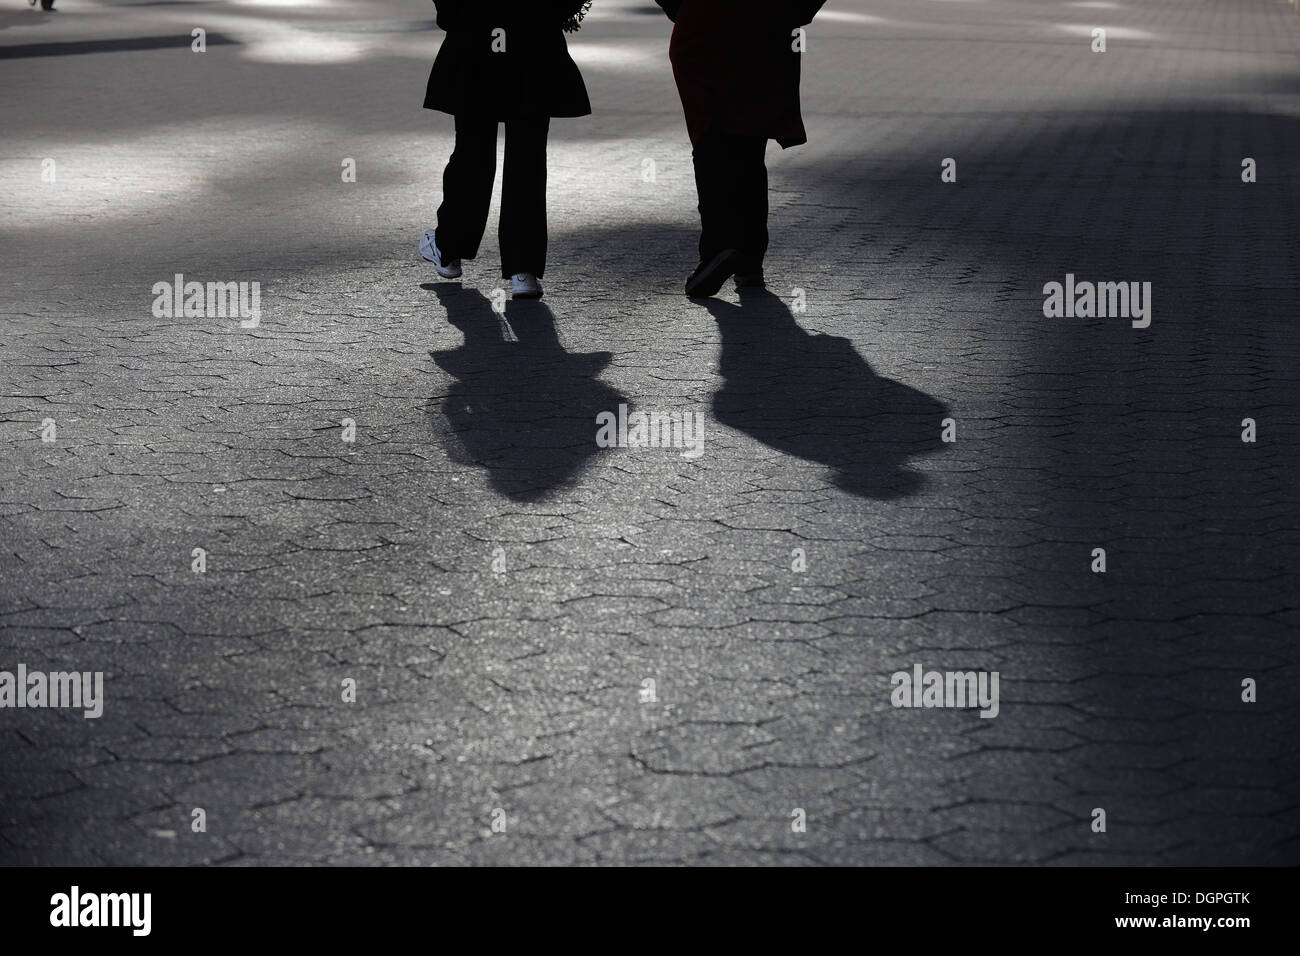 USA, New York State, New York City, Peoples walking on pedestrian Stock Photo